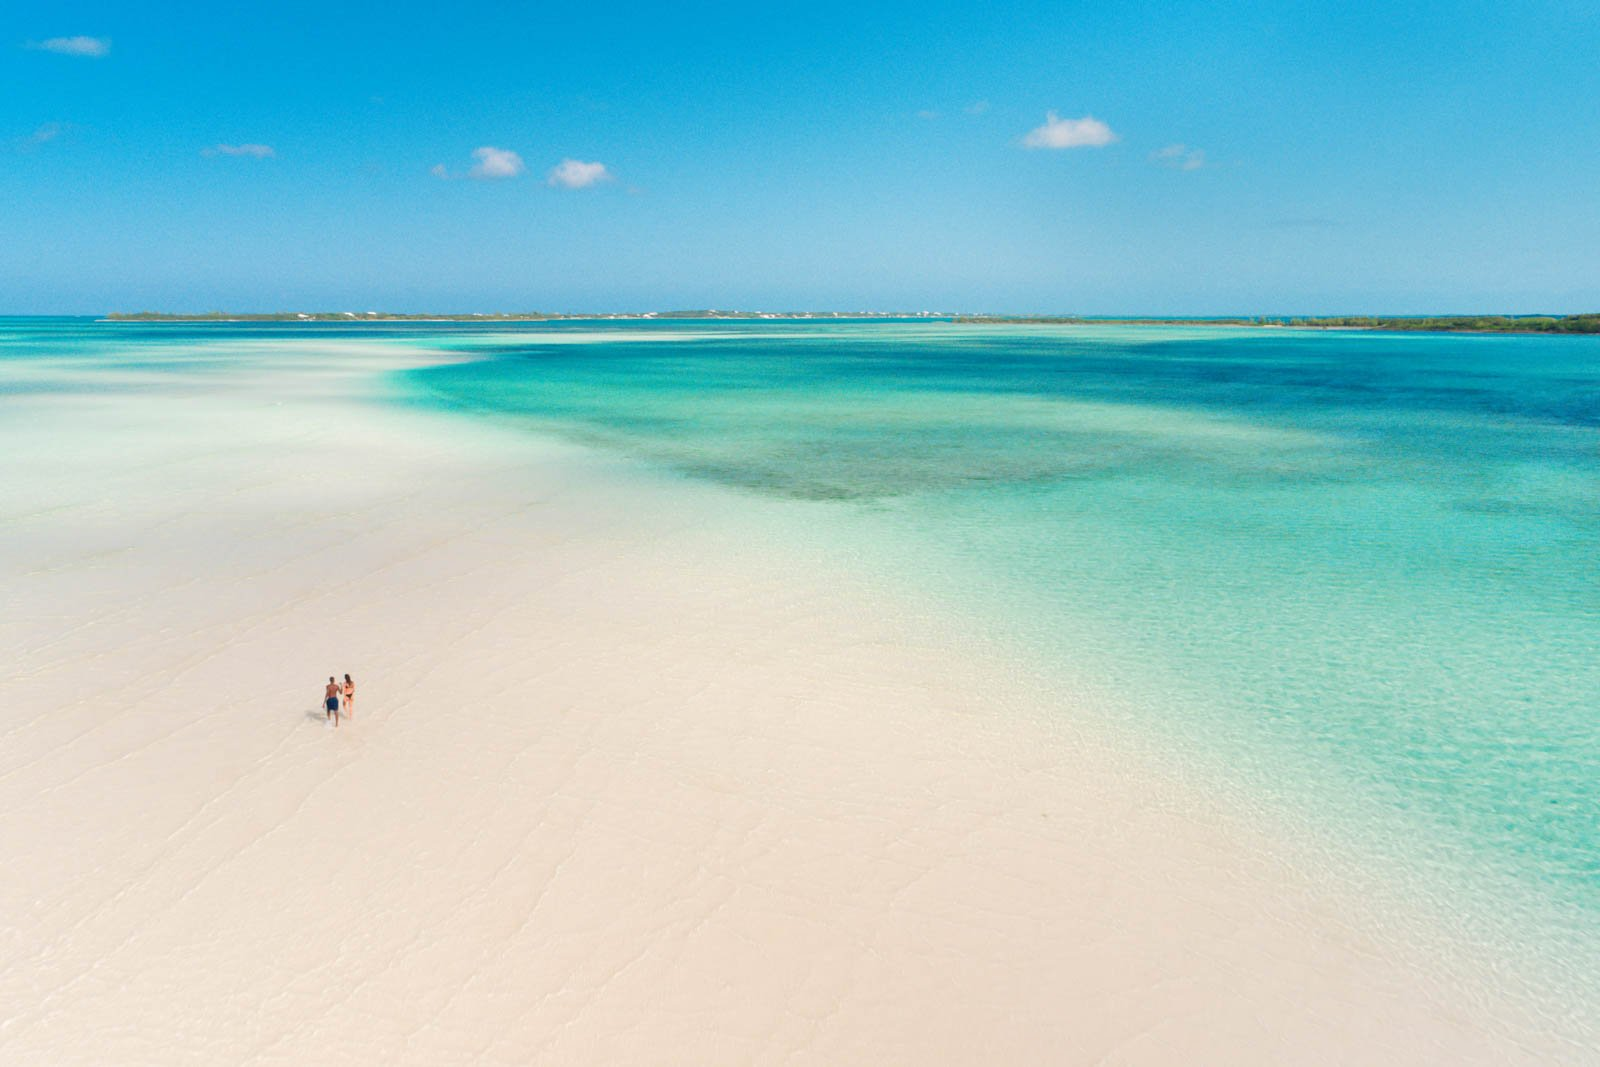 Many of the best things to do in the Bahamas are located on Eleuthera. Sand bars like this are among what to do in the Bahamas. Your Bahamas day trip will be filled with excellent options.